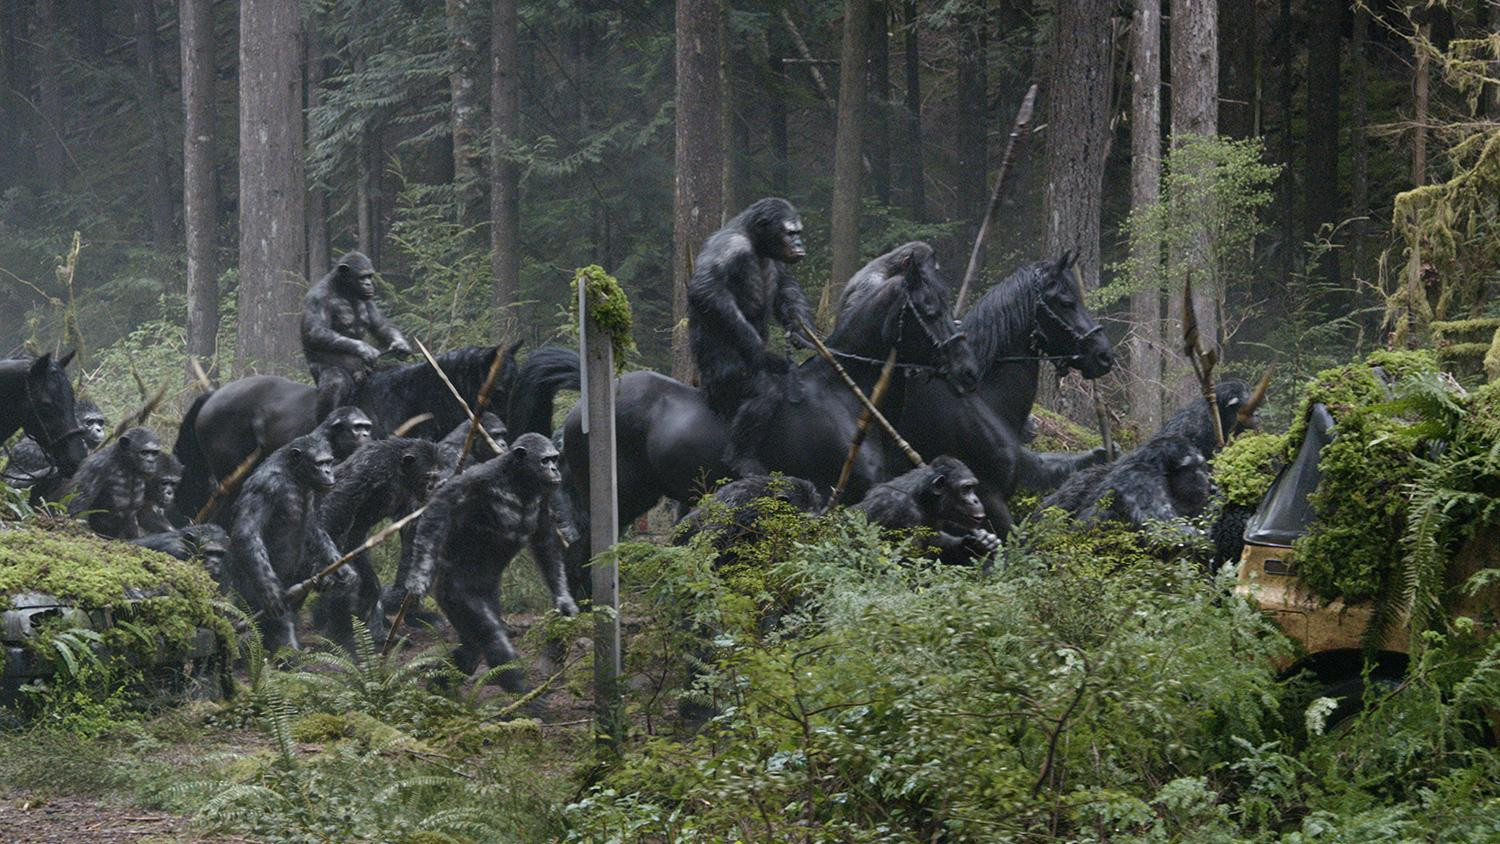 dawn-of-the-planet-of-the-apes-010-1500x844